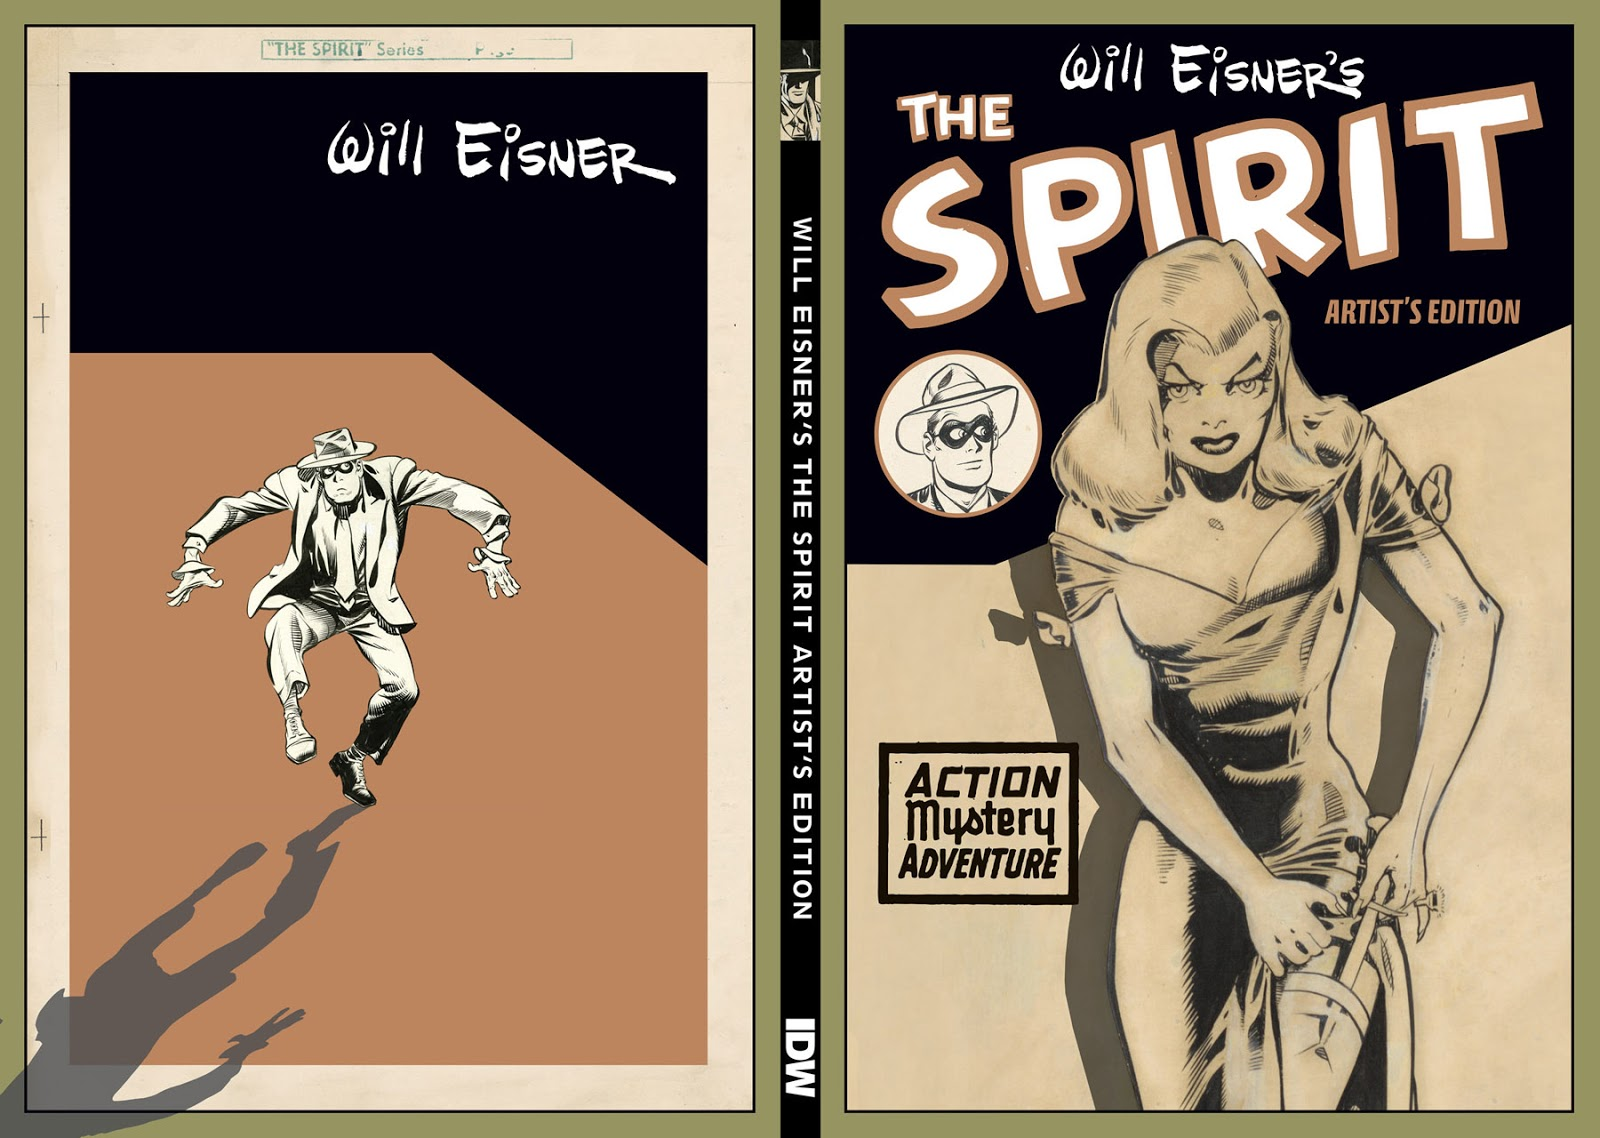 Will Eisners The Spirit Artists Edition variant cover spread